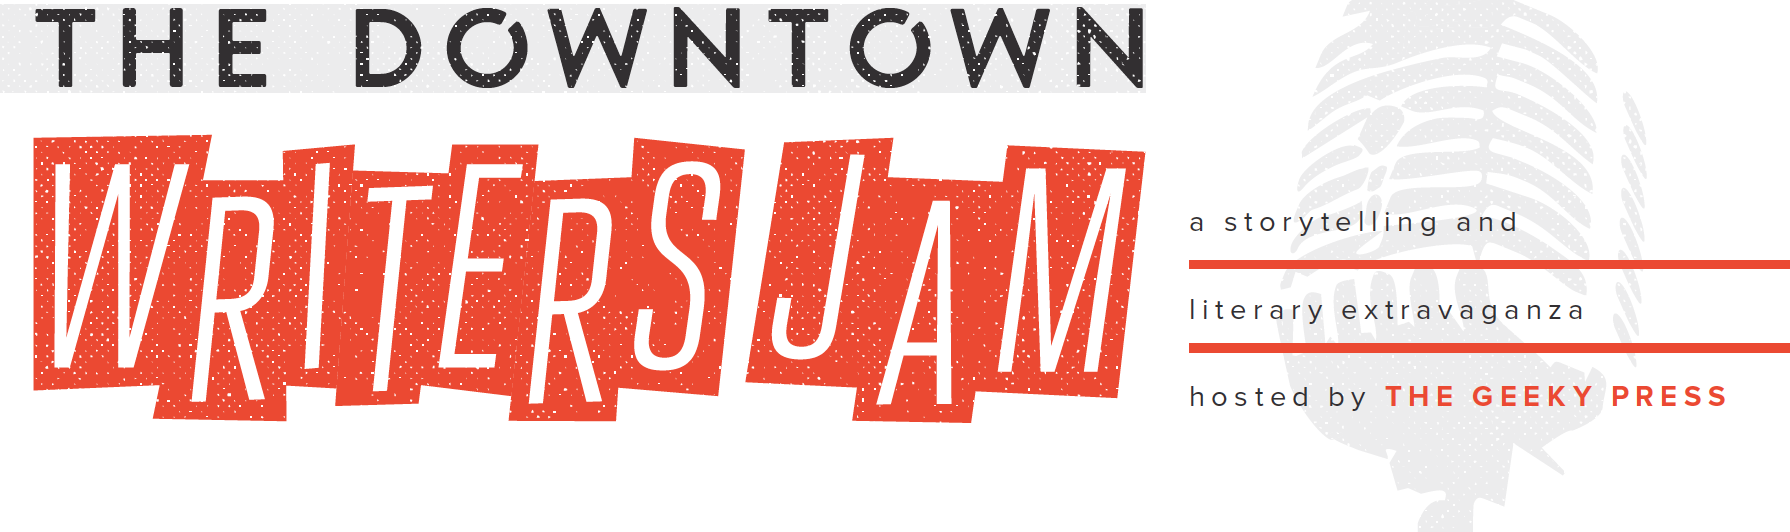 Downtown Writers Jam